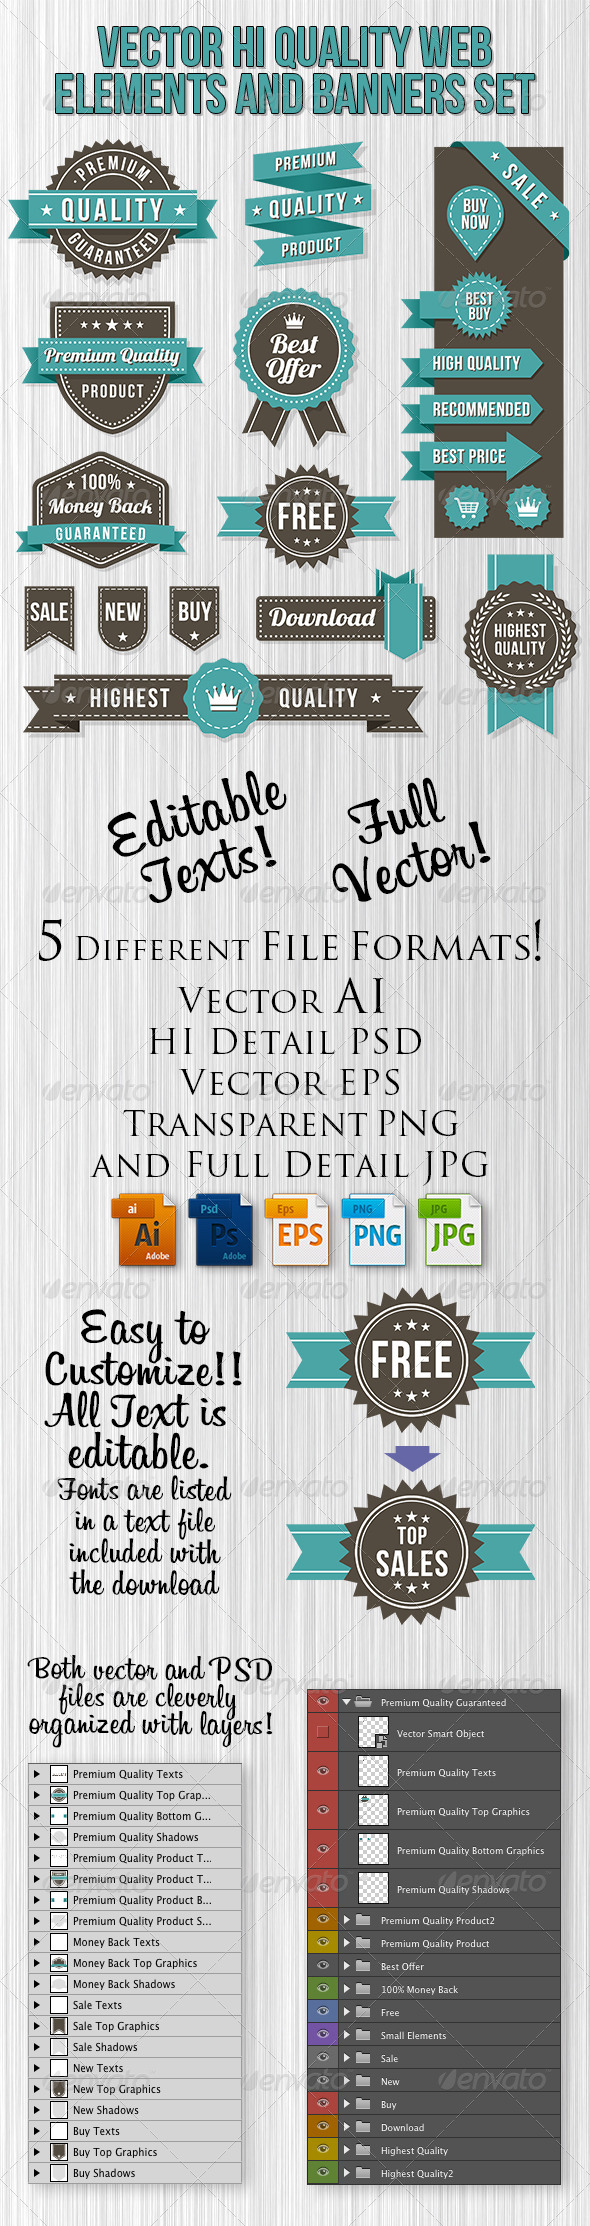 GraphicRiver Vector Web Design Banners and Elements 8721621